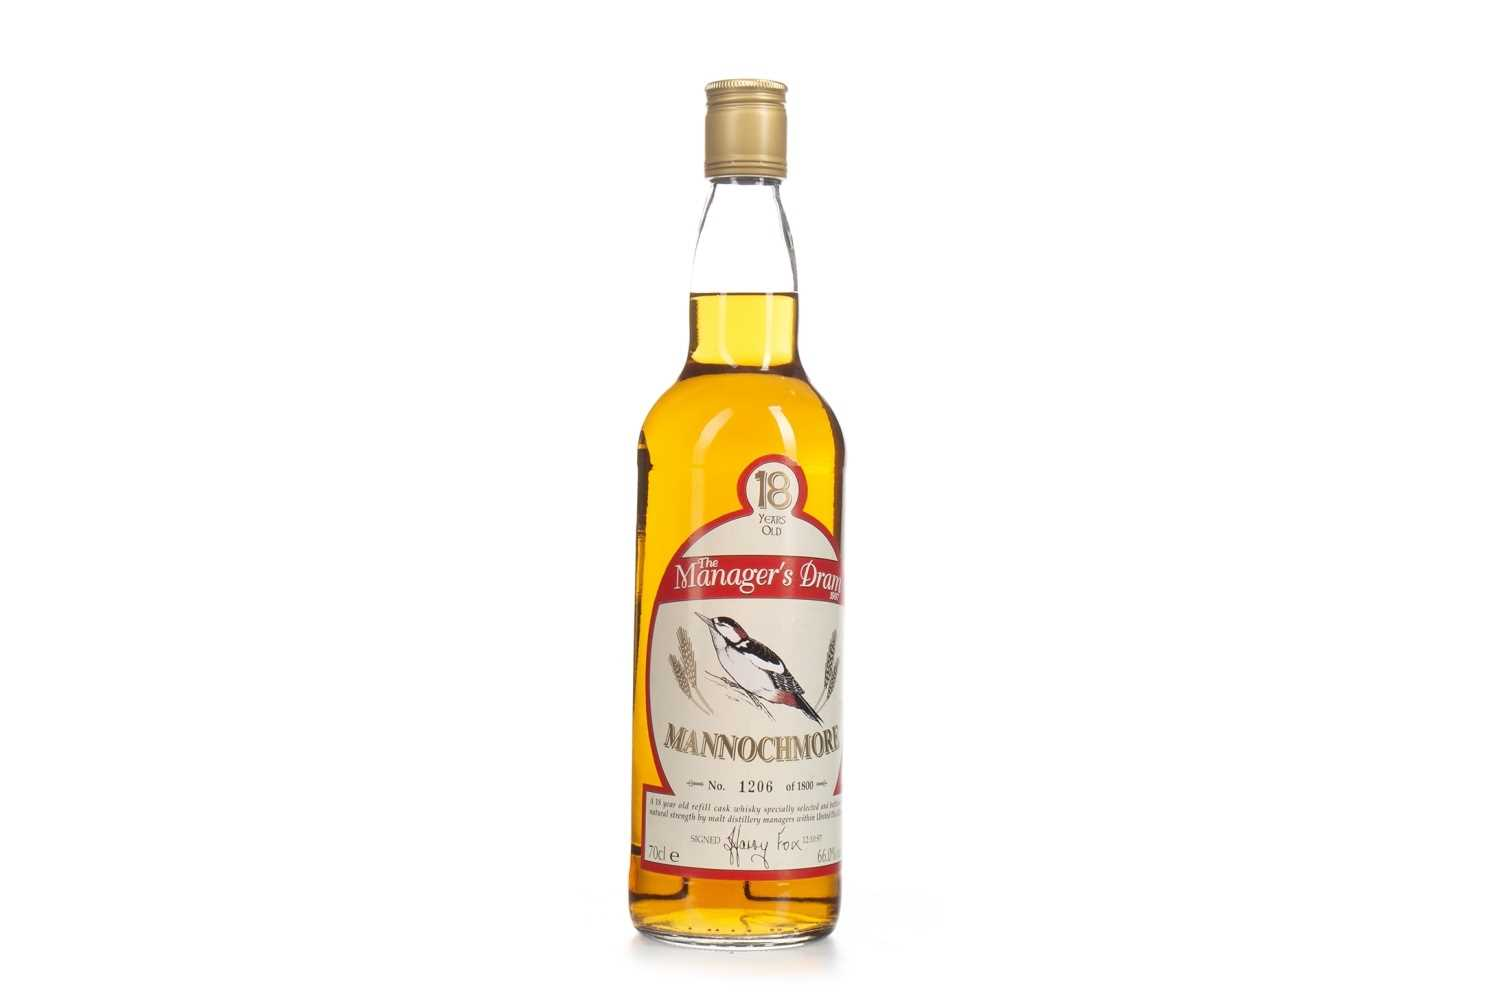 Lot 14-MANNOCHMORE MANAGERS DRAM AGED 18 YEARS